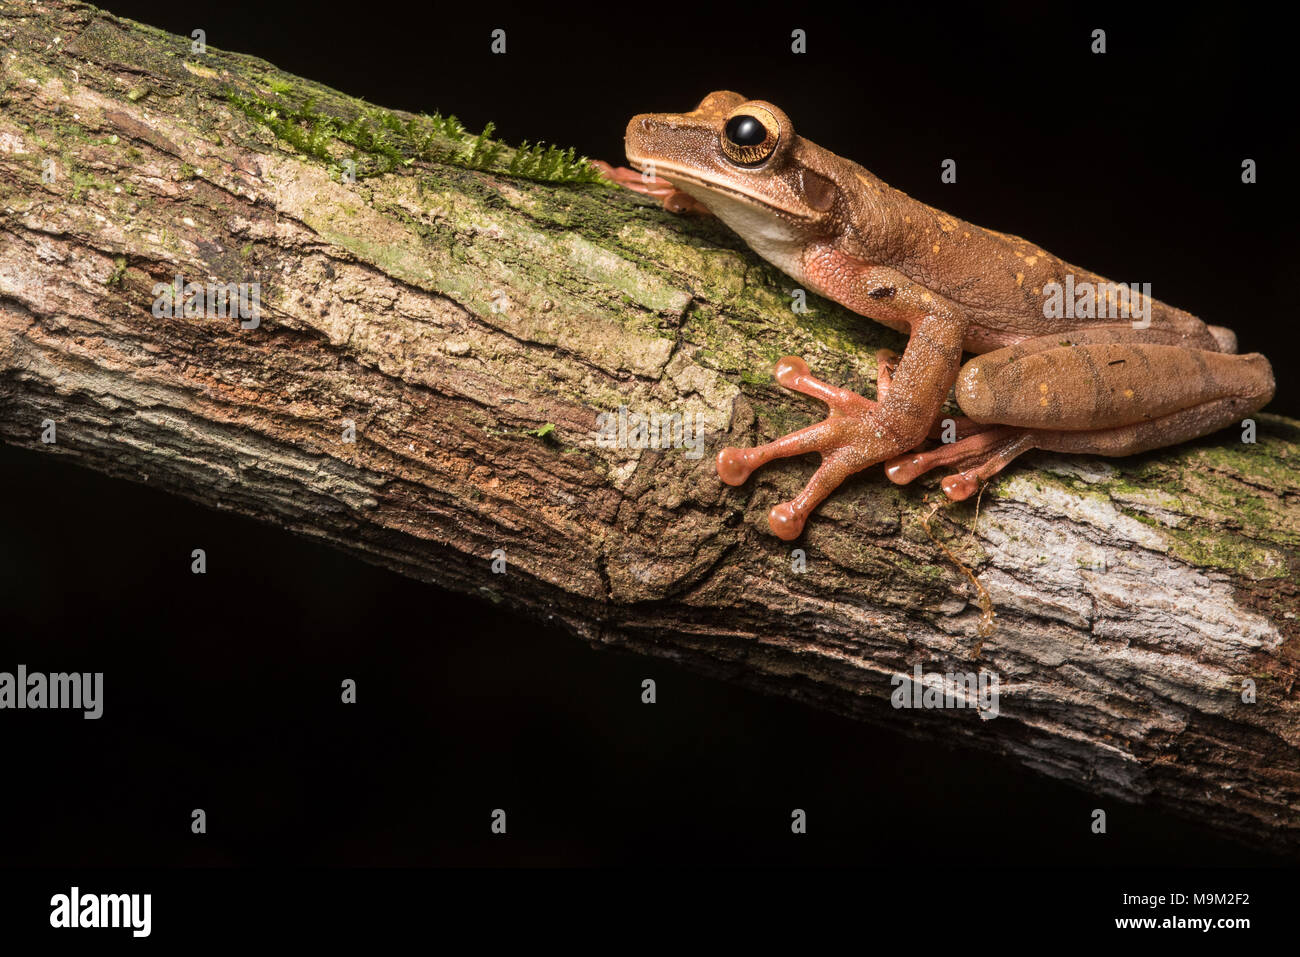 Cayenne slender-legged tree frog (Osteocephalus cf. leprieurii) a gorgeous frog from the high altitude forests of Northern Peru. - Stock Image